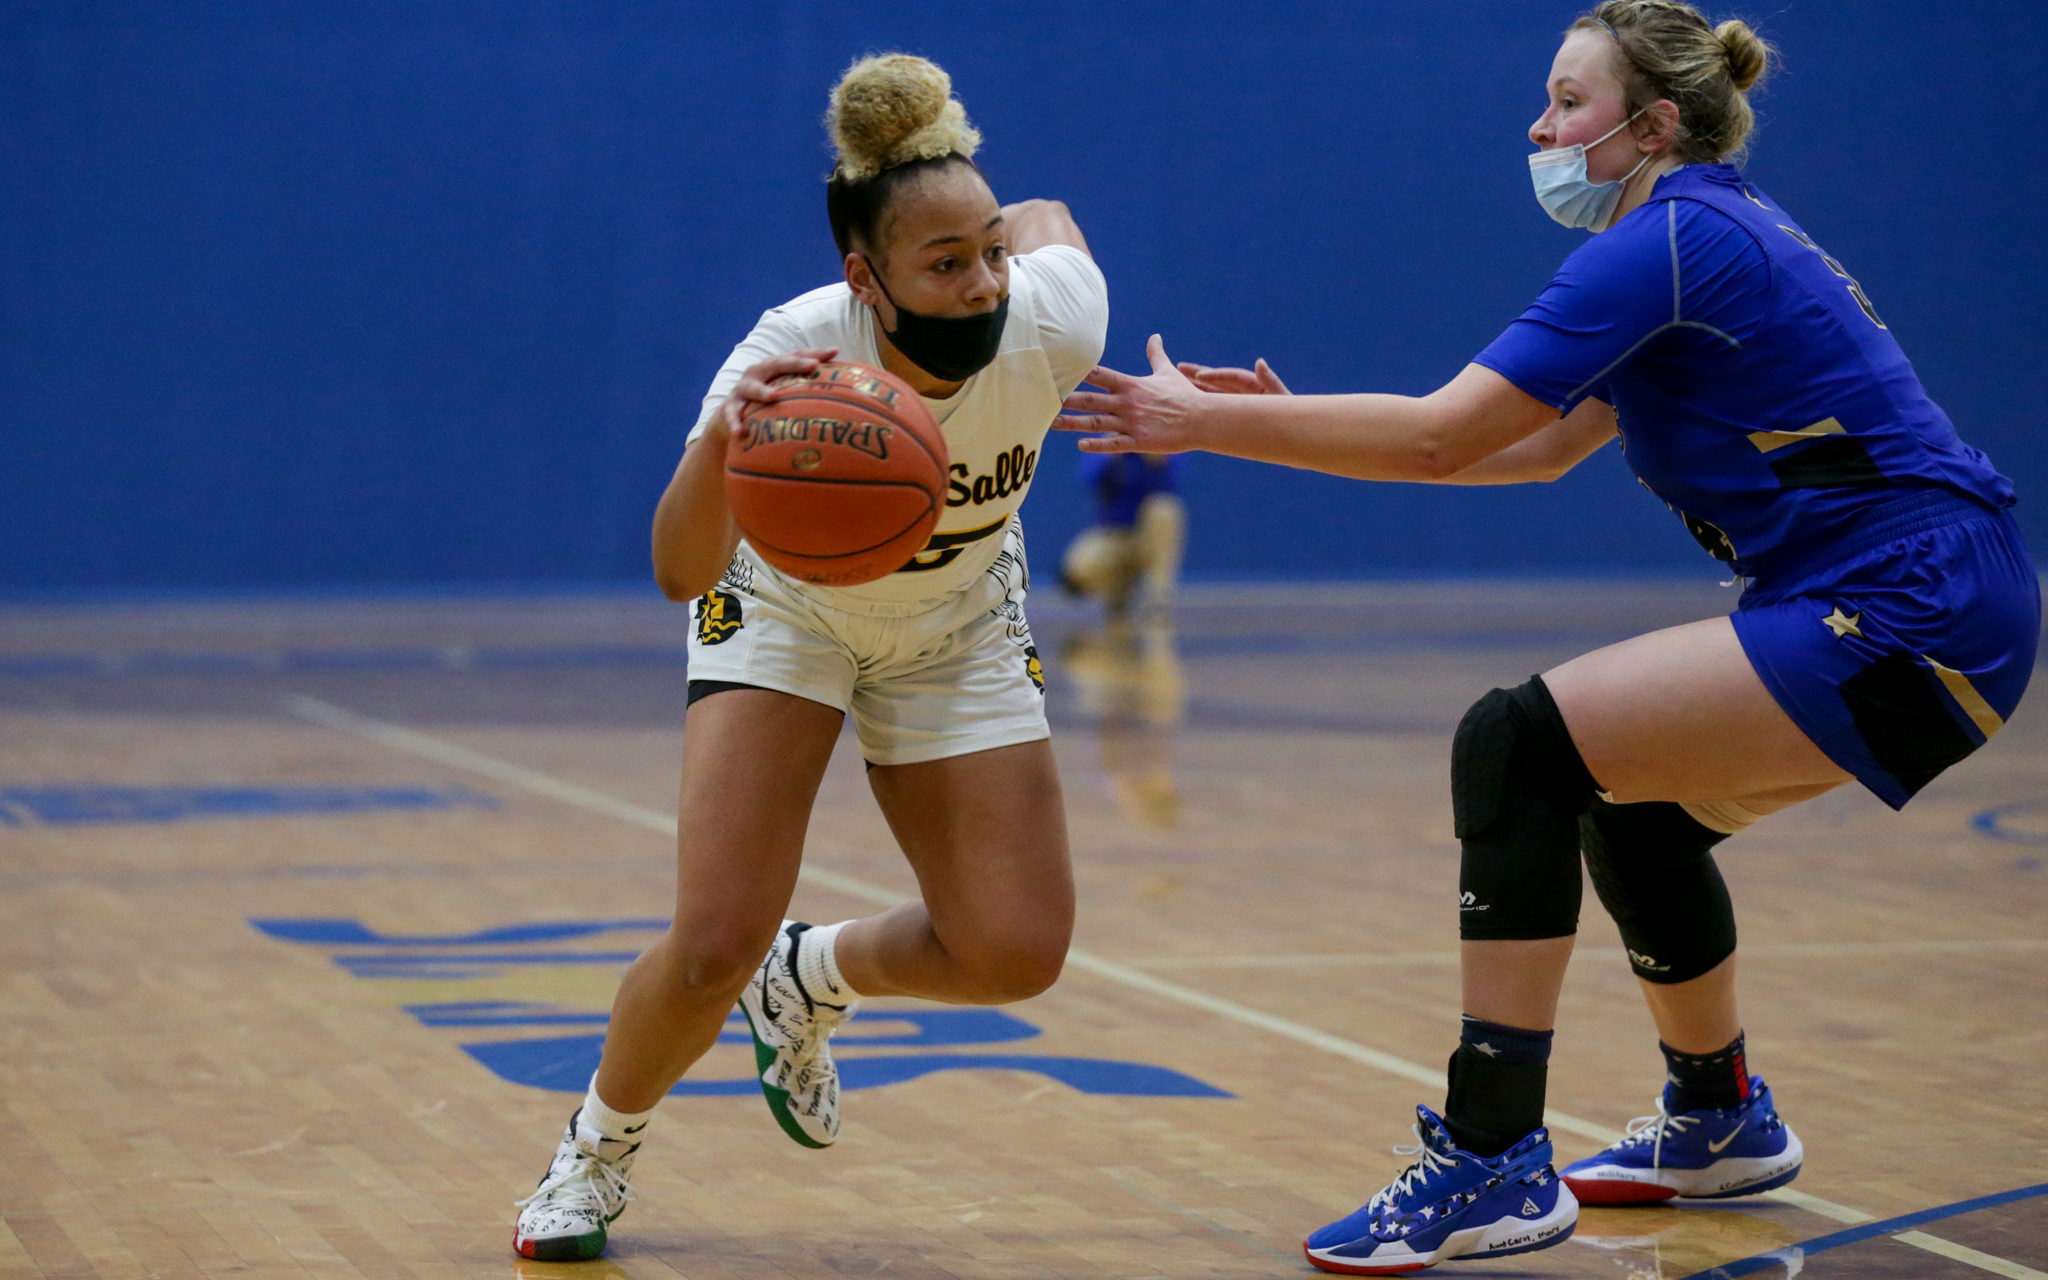 DeLaSalle's Sydney Runsewe (left) tries to dribble around Holy Angels' Rachel Kawiecki during Friday night's Tri-Metro Conference matchup in Richfield. The Islanders fell to the Stars 96-69. Photo by Jeff Lawler, SportsEngine